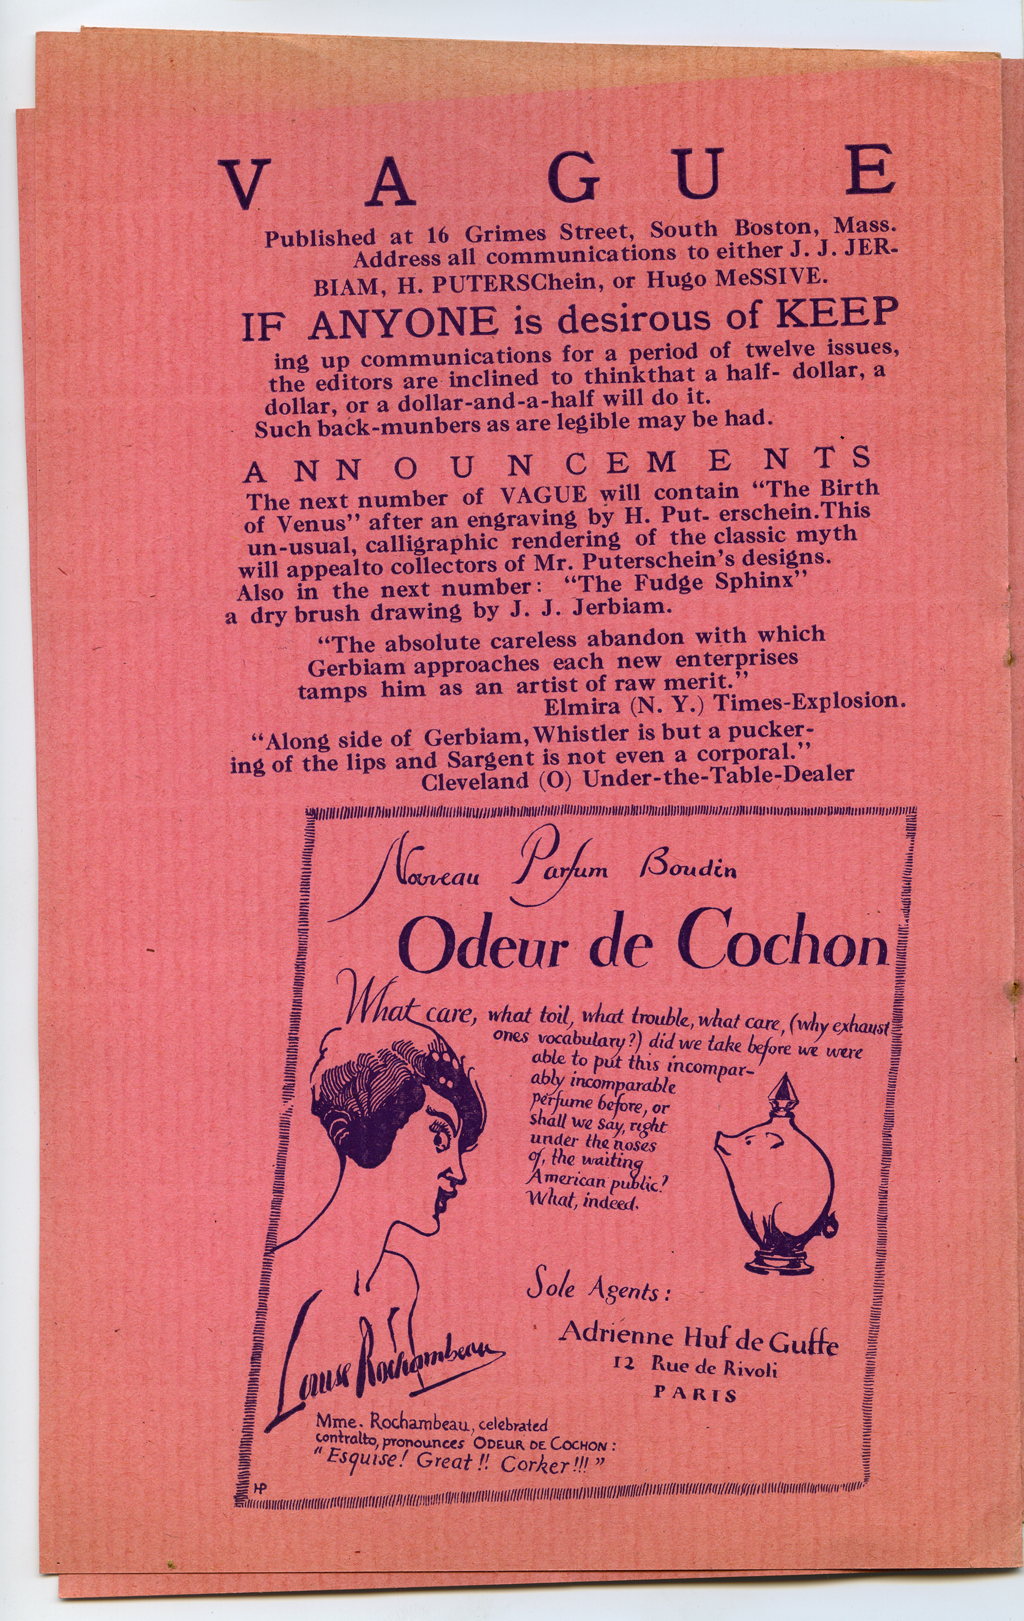 """Odeur de Cochon"" advertisement [p. 6] from Vague (1915). Design by Hermann Püterschein (pseud. W.A. Dwiggins)."